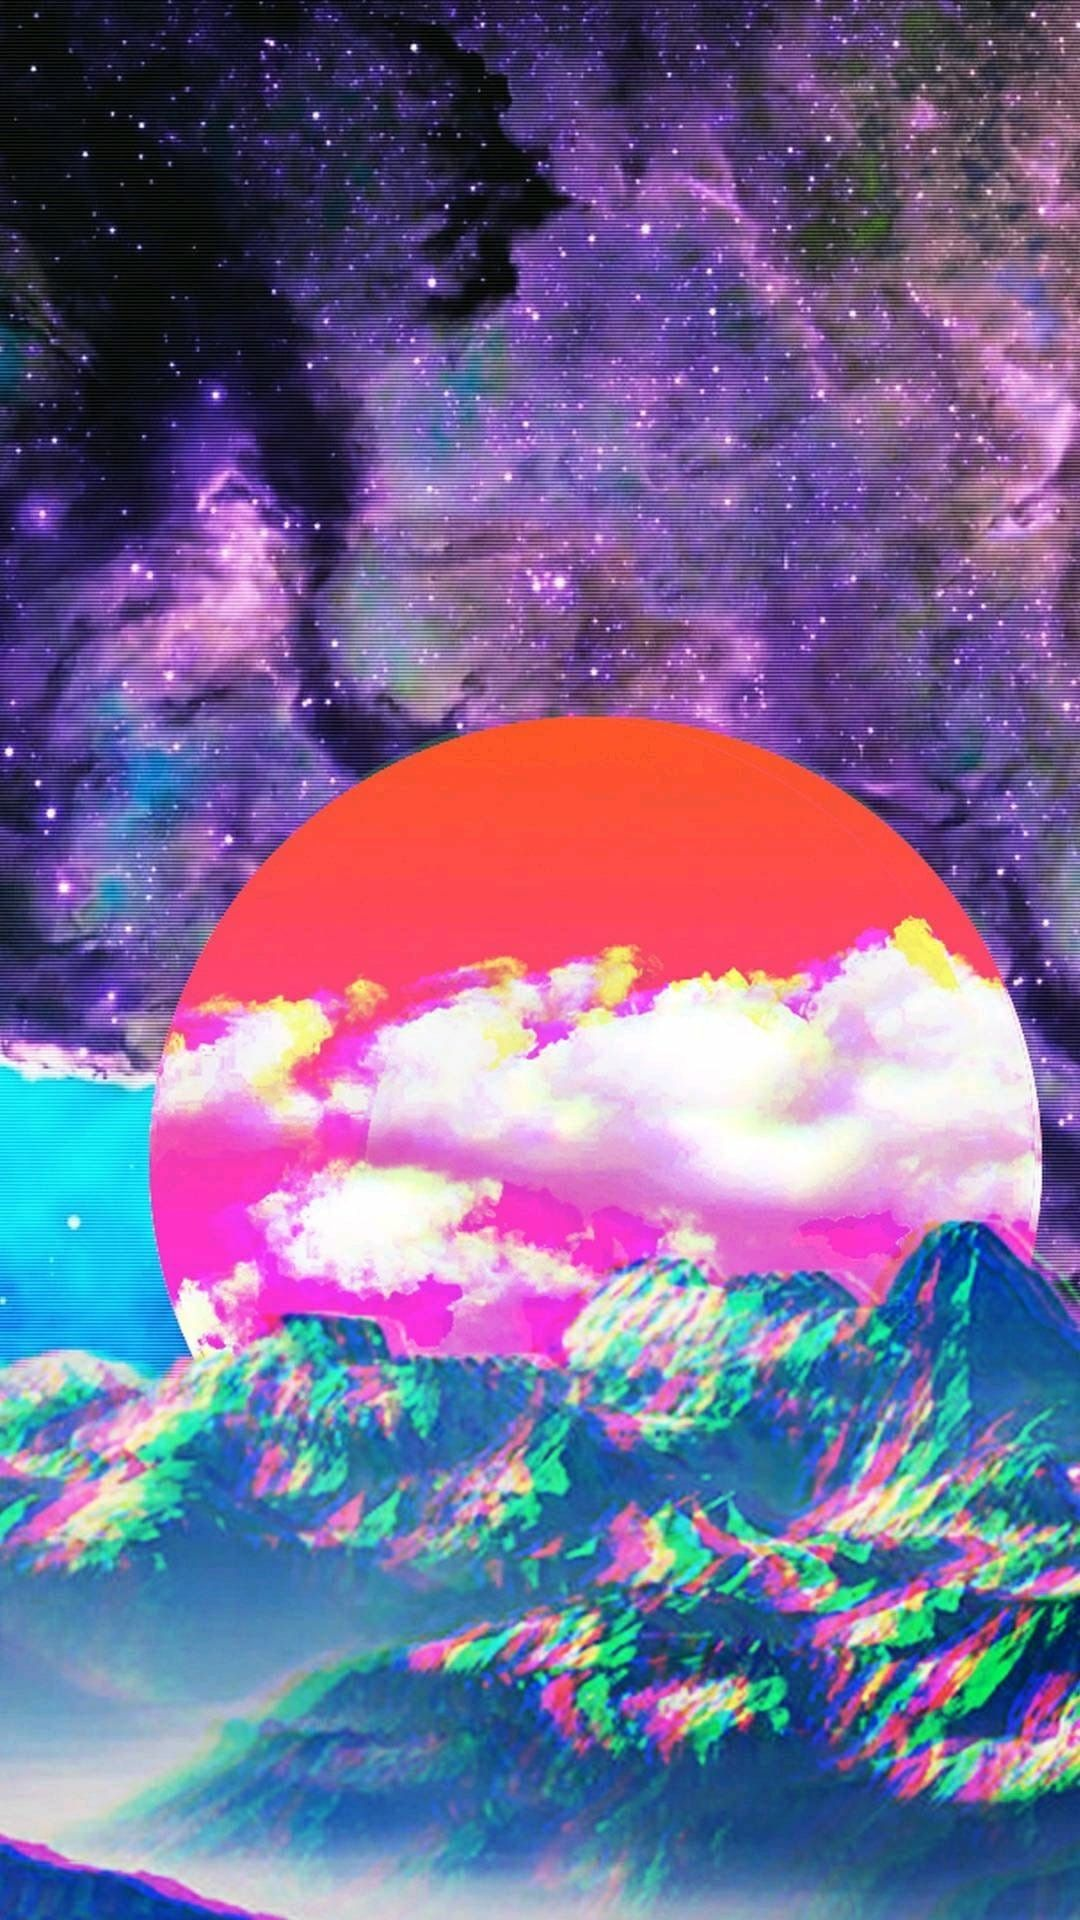 Pin by XQD on Aesthetic | Vaporwave wallpaper, Cool ...